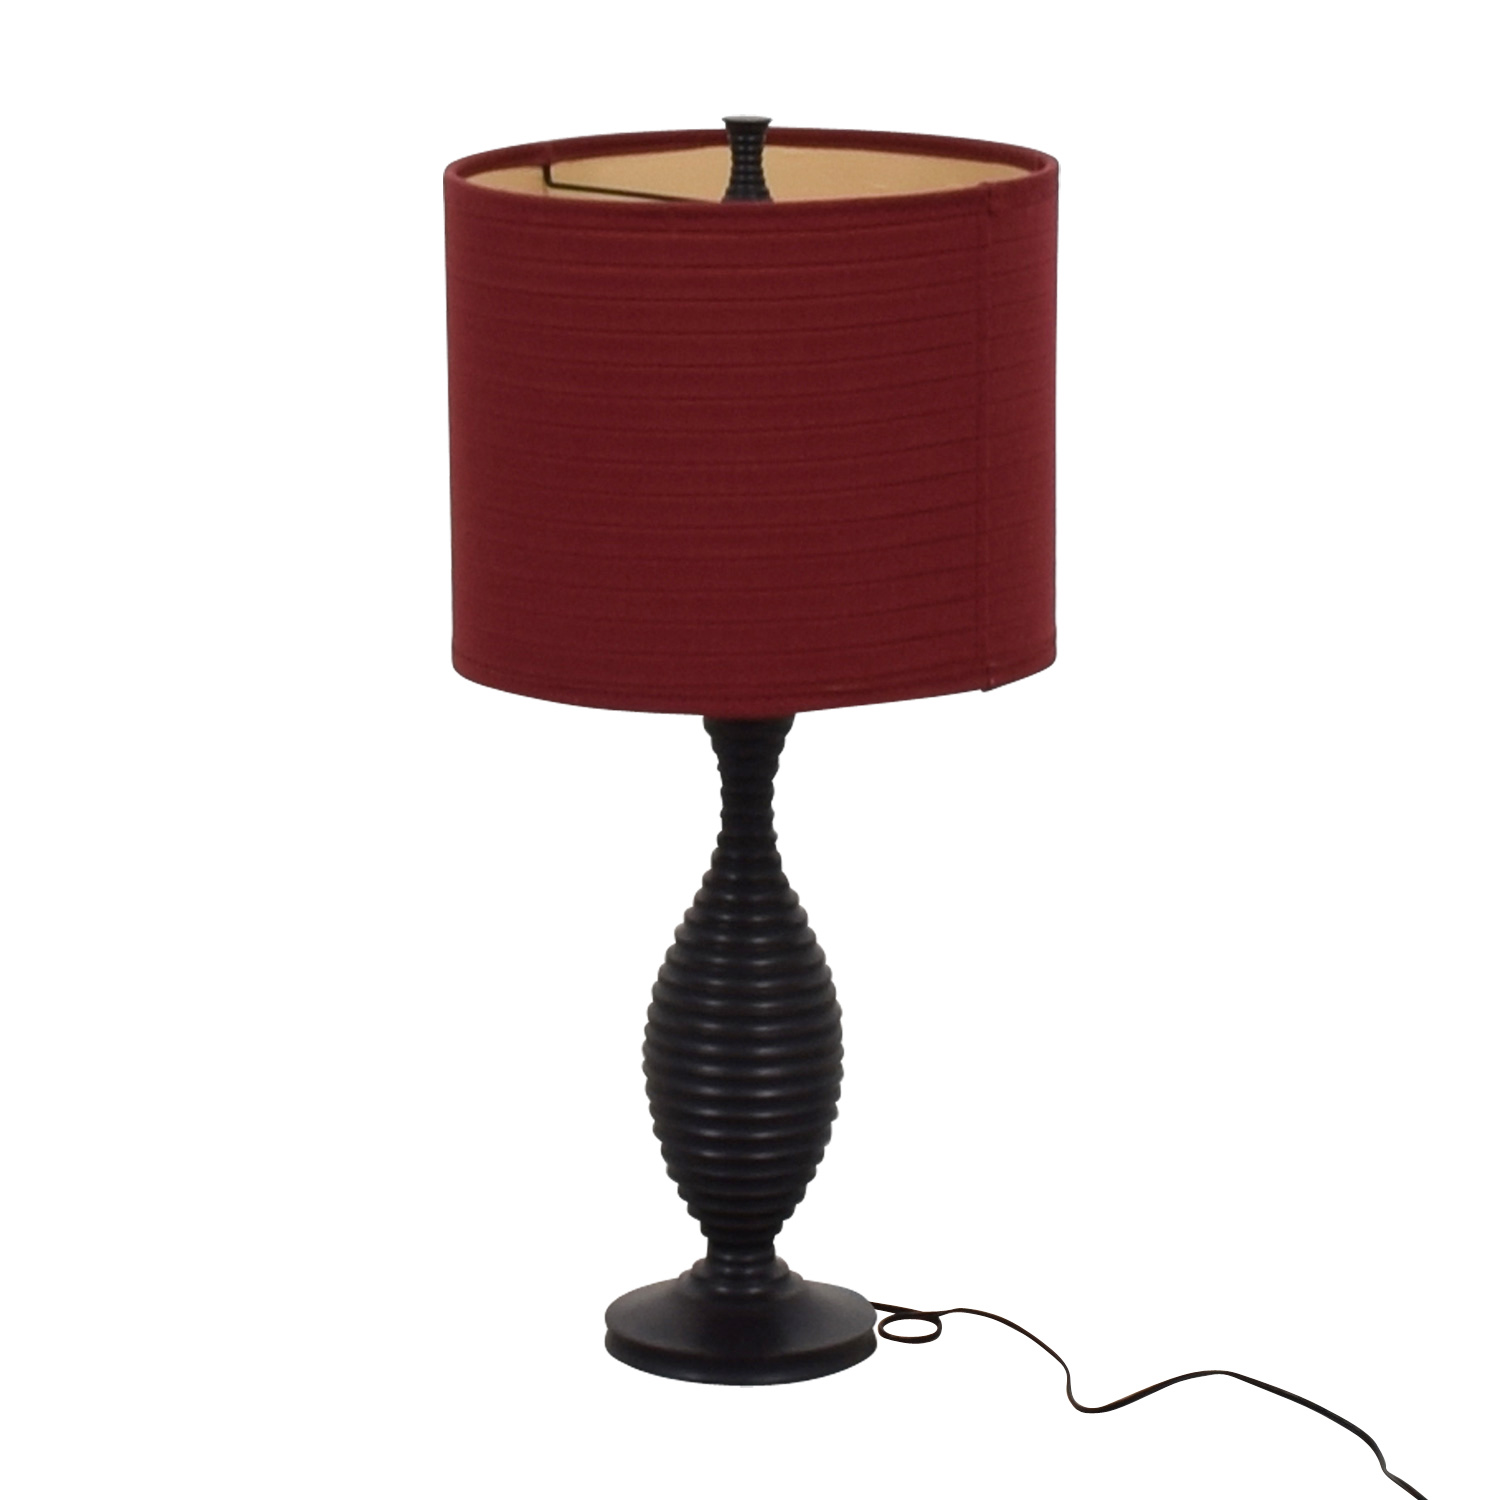 33 Off Black Red Shade Table Lamp Decor